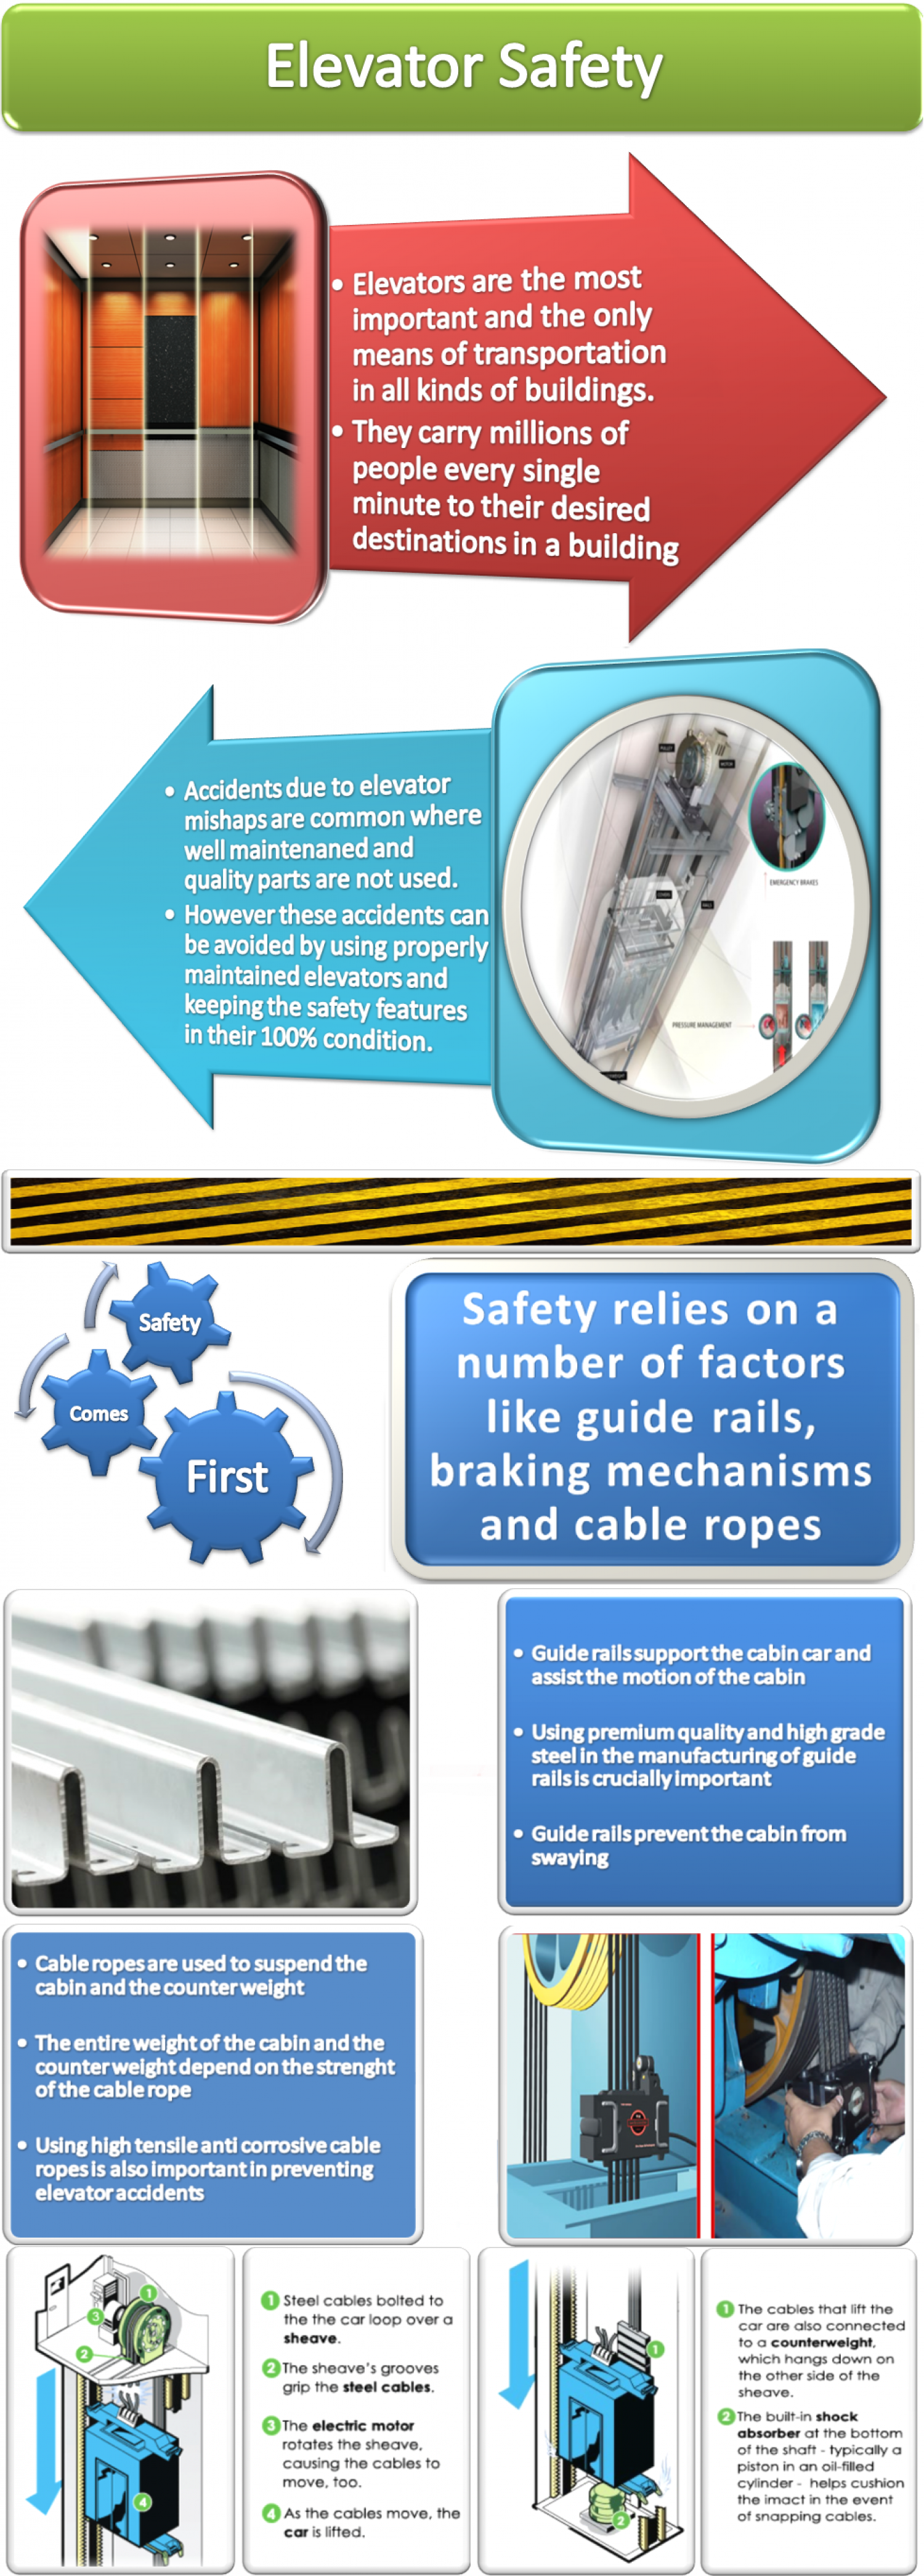 Elevator Safety Guidelines Infographic